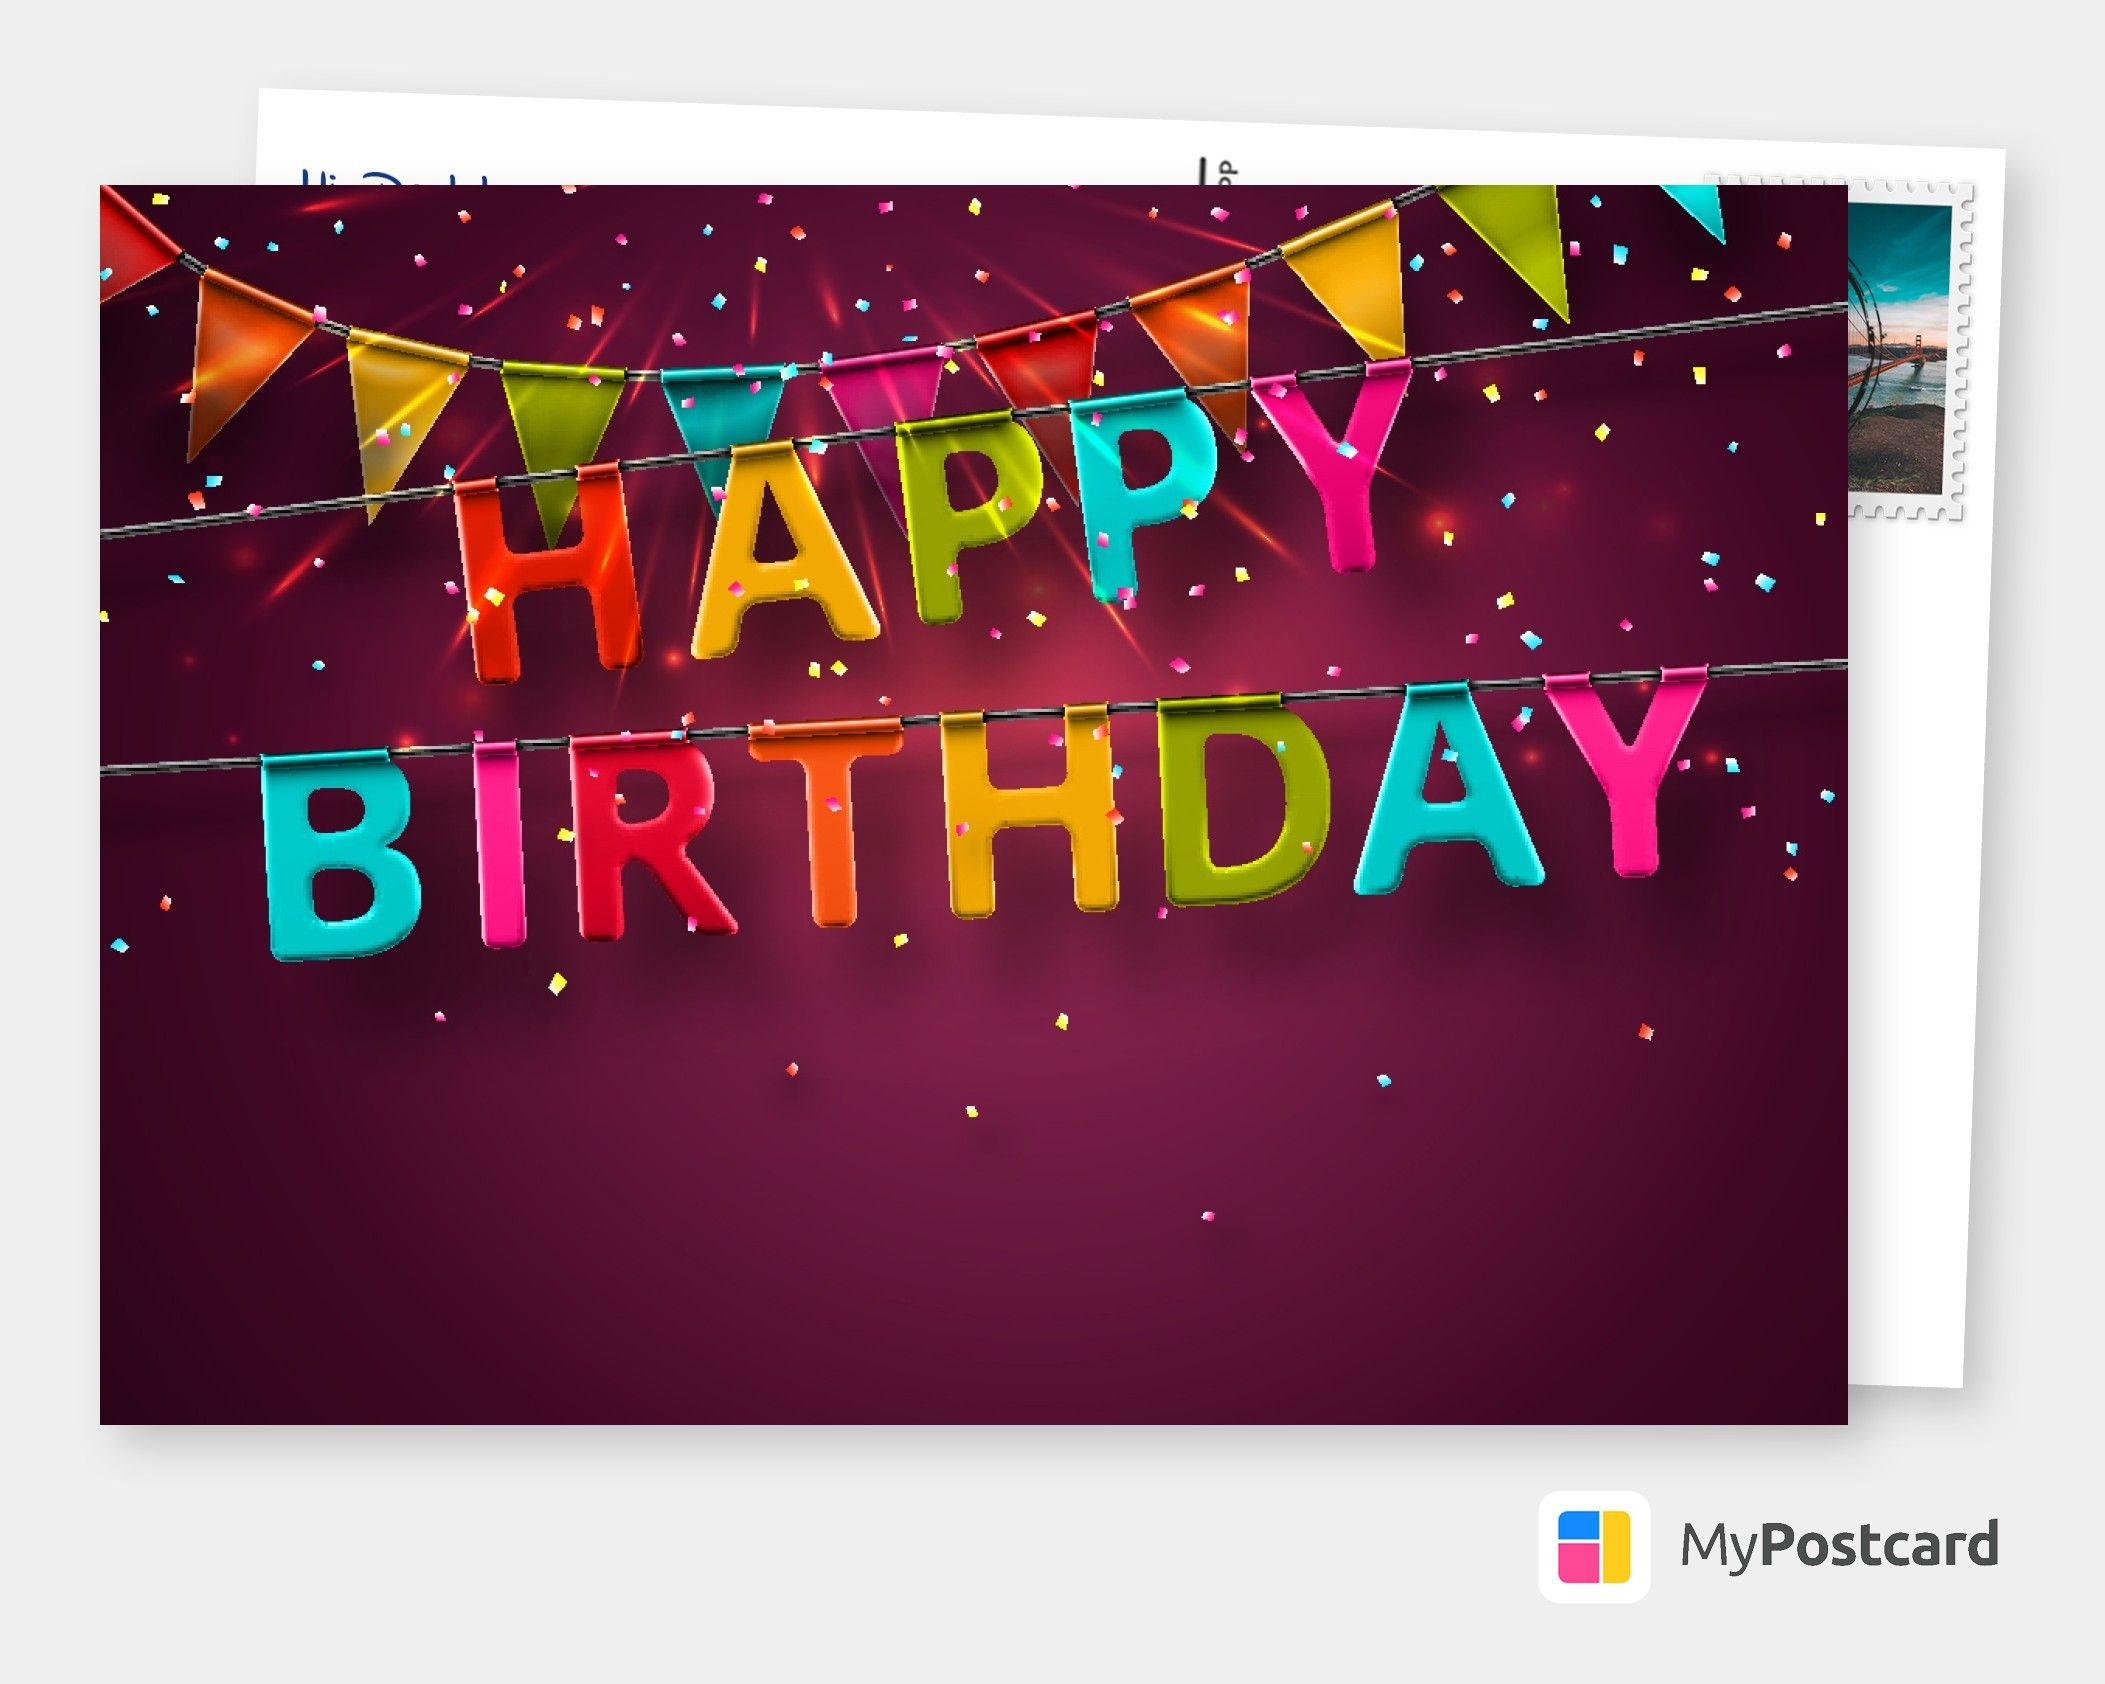 Send Birthday Cards Online To Canada Us Uk International Free Shipping Printed Mailed For You Cards Postcard Greeting Cards Birthday Card Online Birthday Postcards Birthday Card Sayings